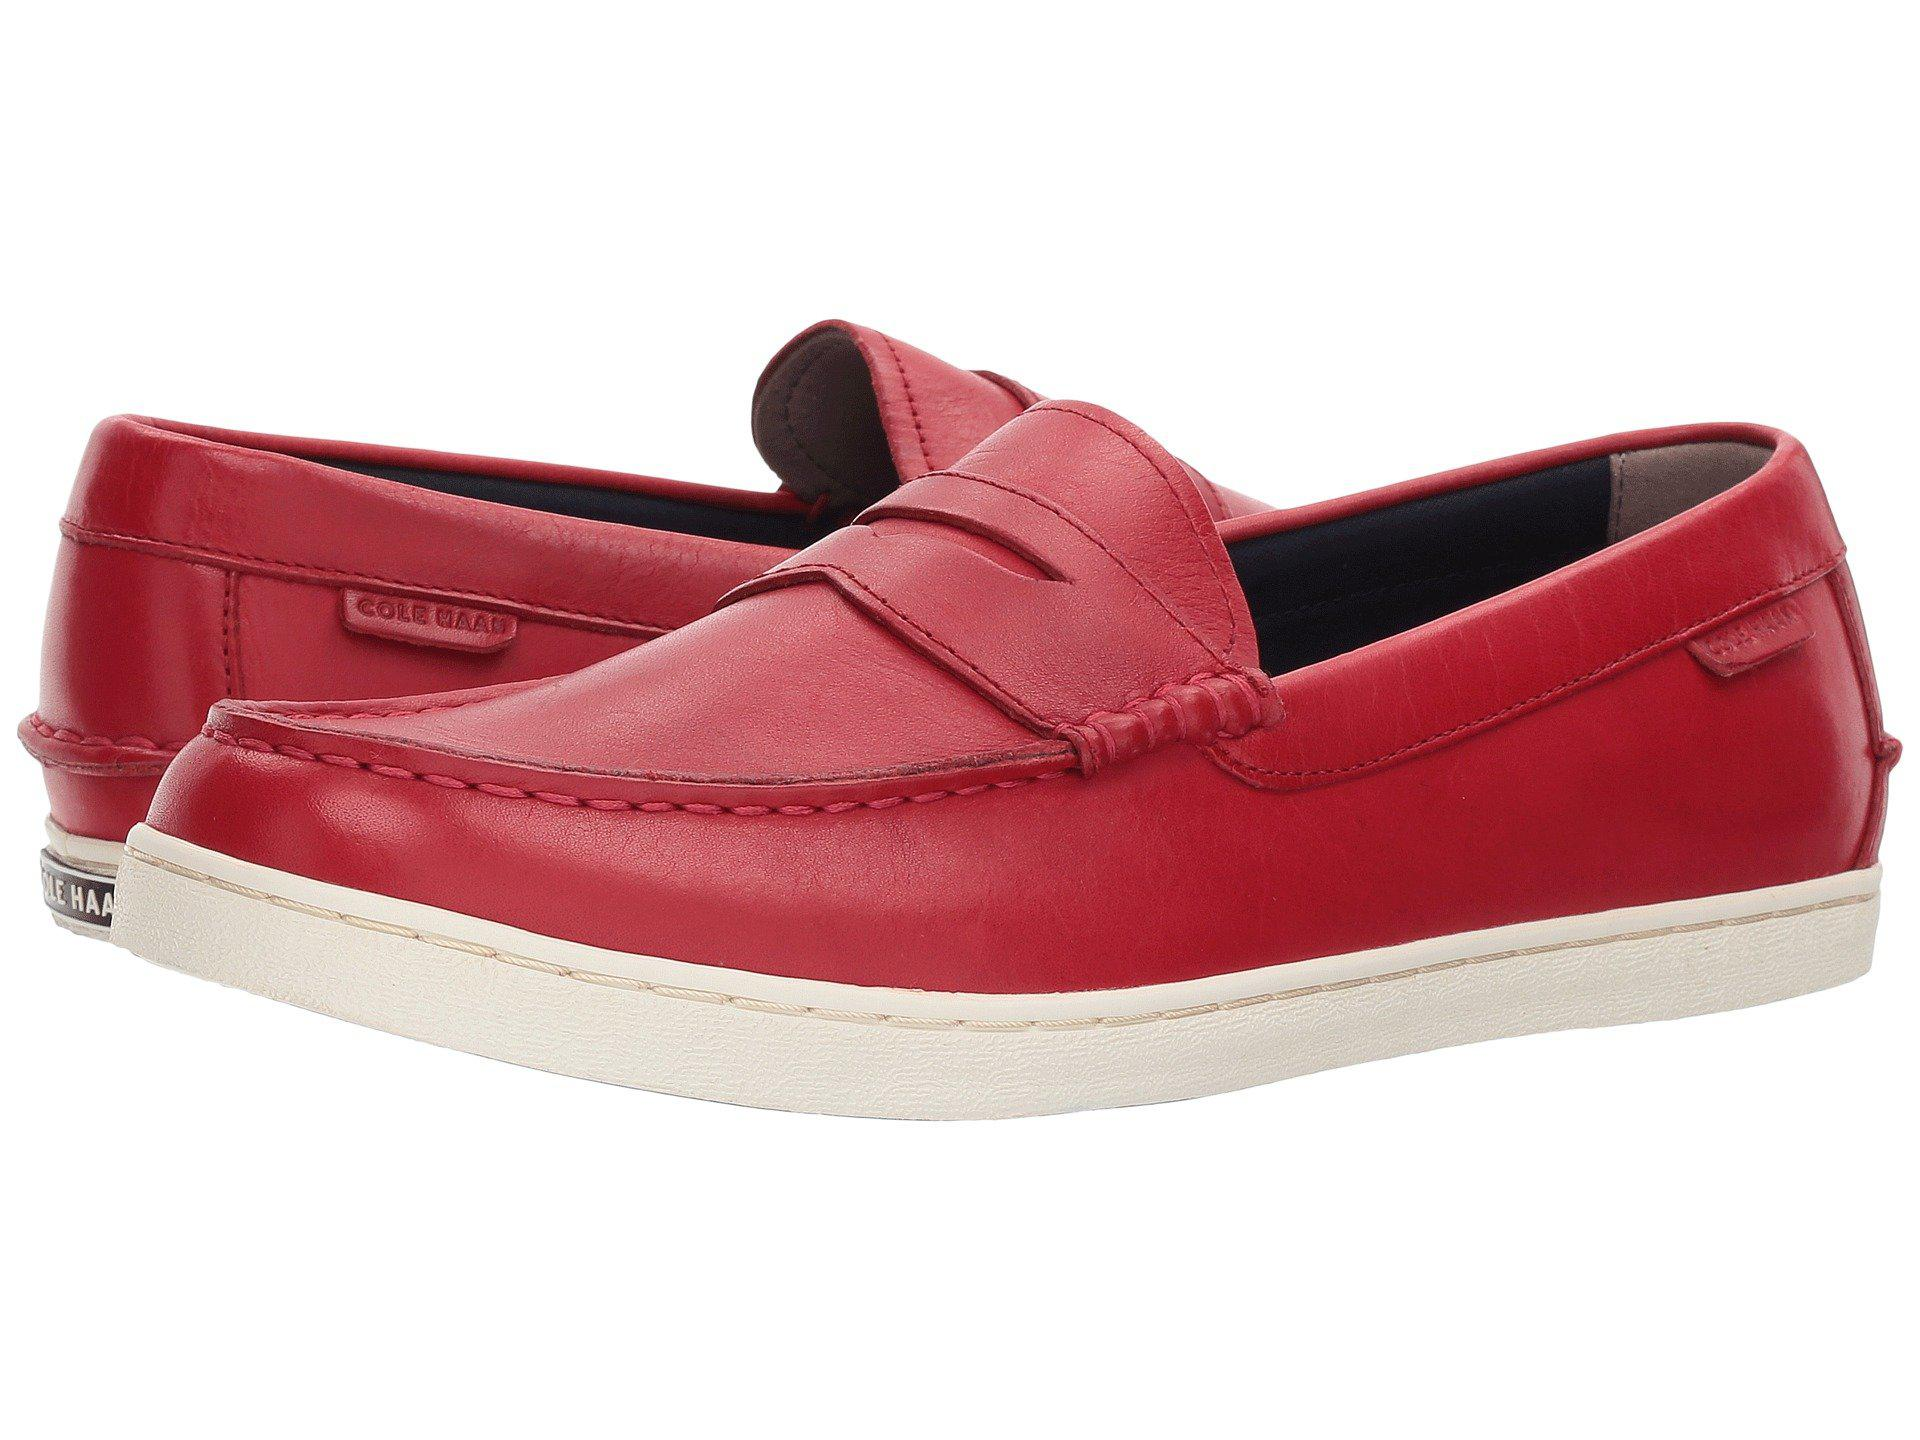 d804147294c Lyst - Cole Haan Pinch Weekender Hand Stain in Red for Men